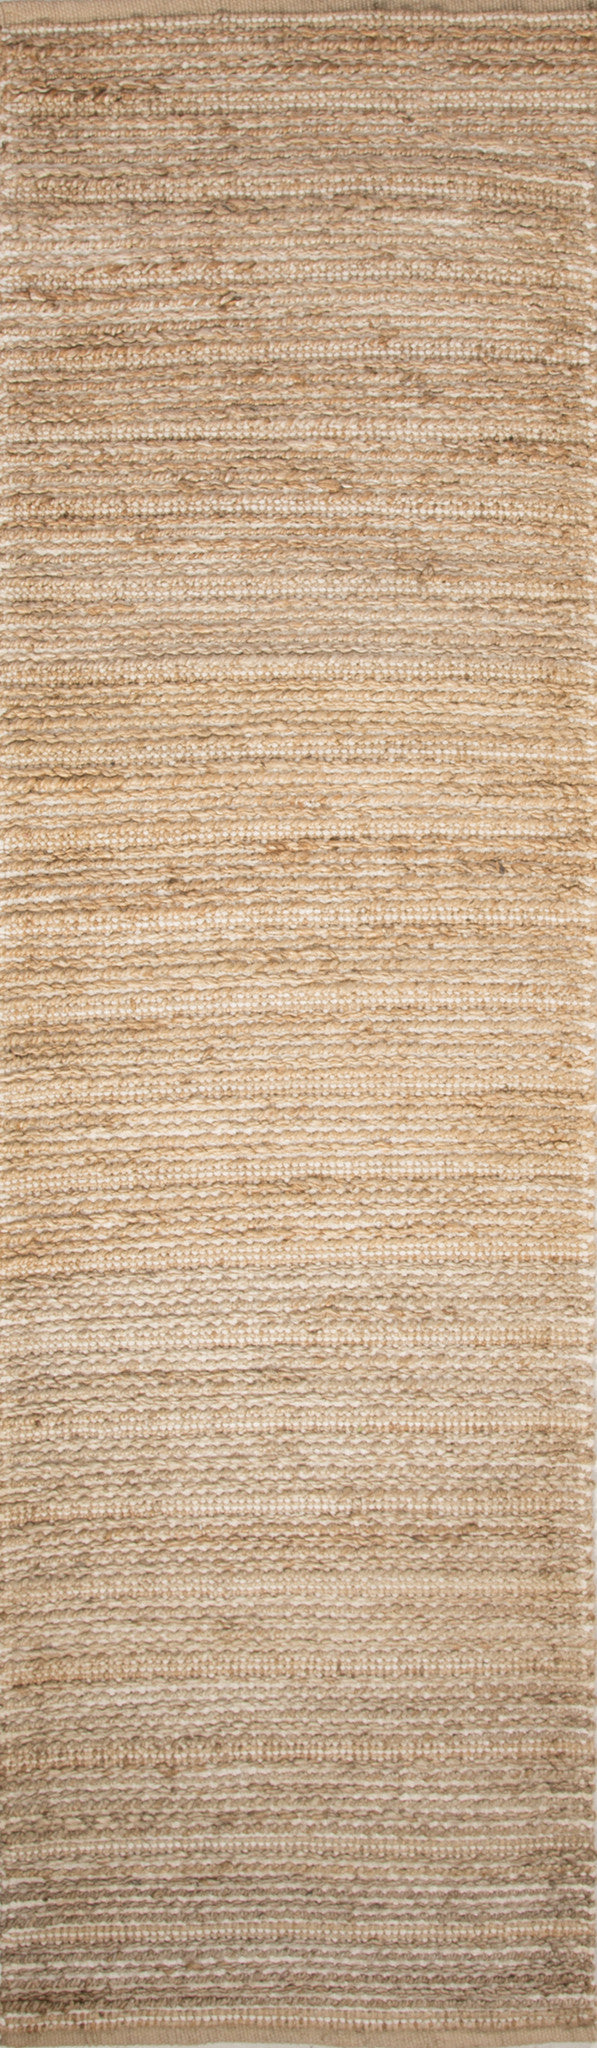 Jaipur Rugs Naturals Solid Pattern Taupe/Ivory Jute and Cotton Area Rug